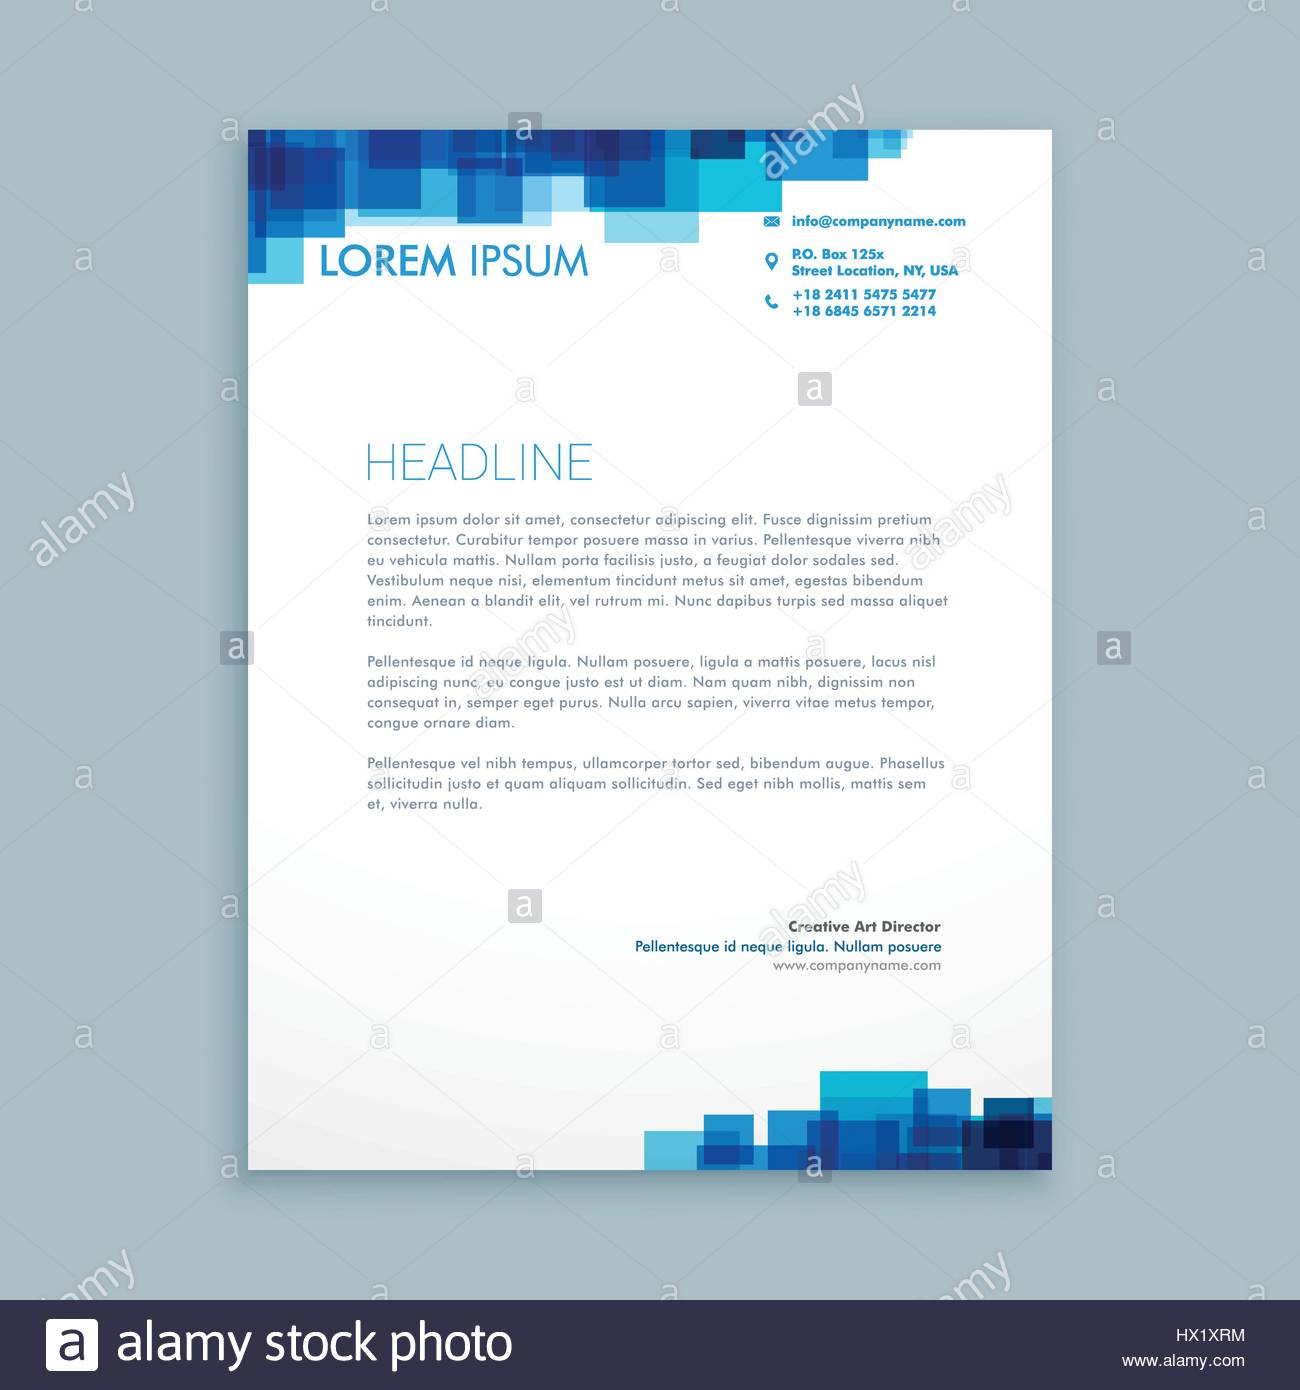 Abstract coporate business letterhead template vector design stock abstract coporate business letterhead template vector design illustration altavistaventures Images